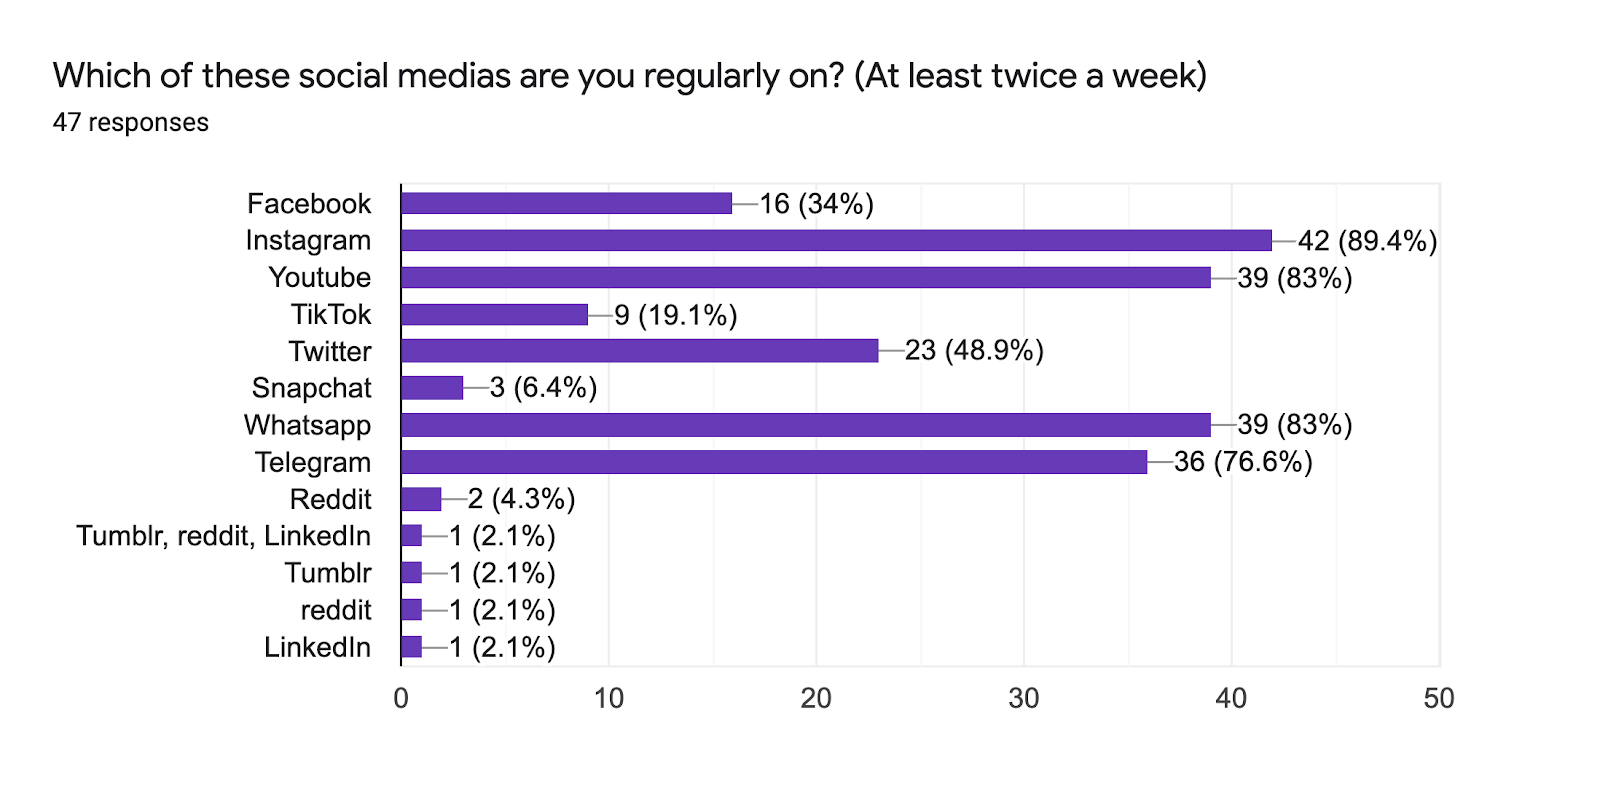 Forms response chart. Question title: Which of these social medias are you regularly on? (At least twice a week). Number of responses: 47 responses.